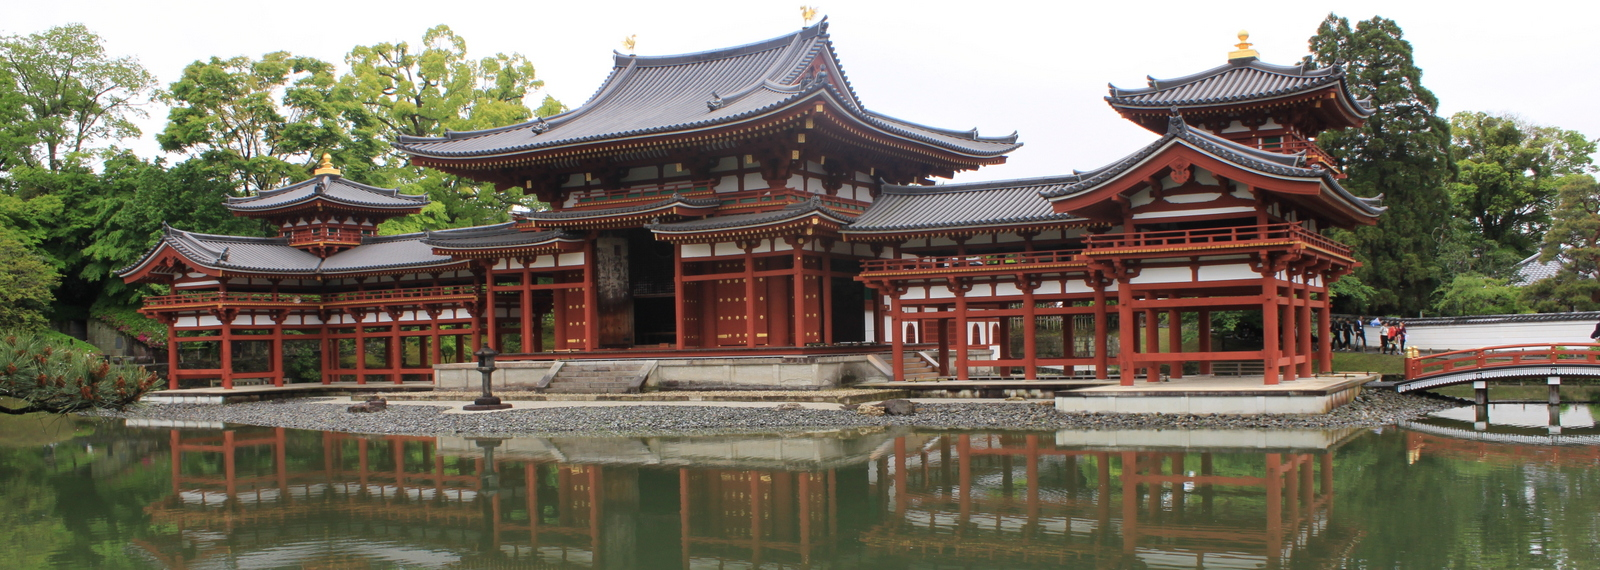 Japan, Uji, Byodo-in Temple